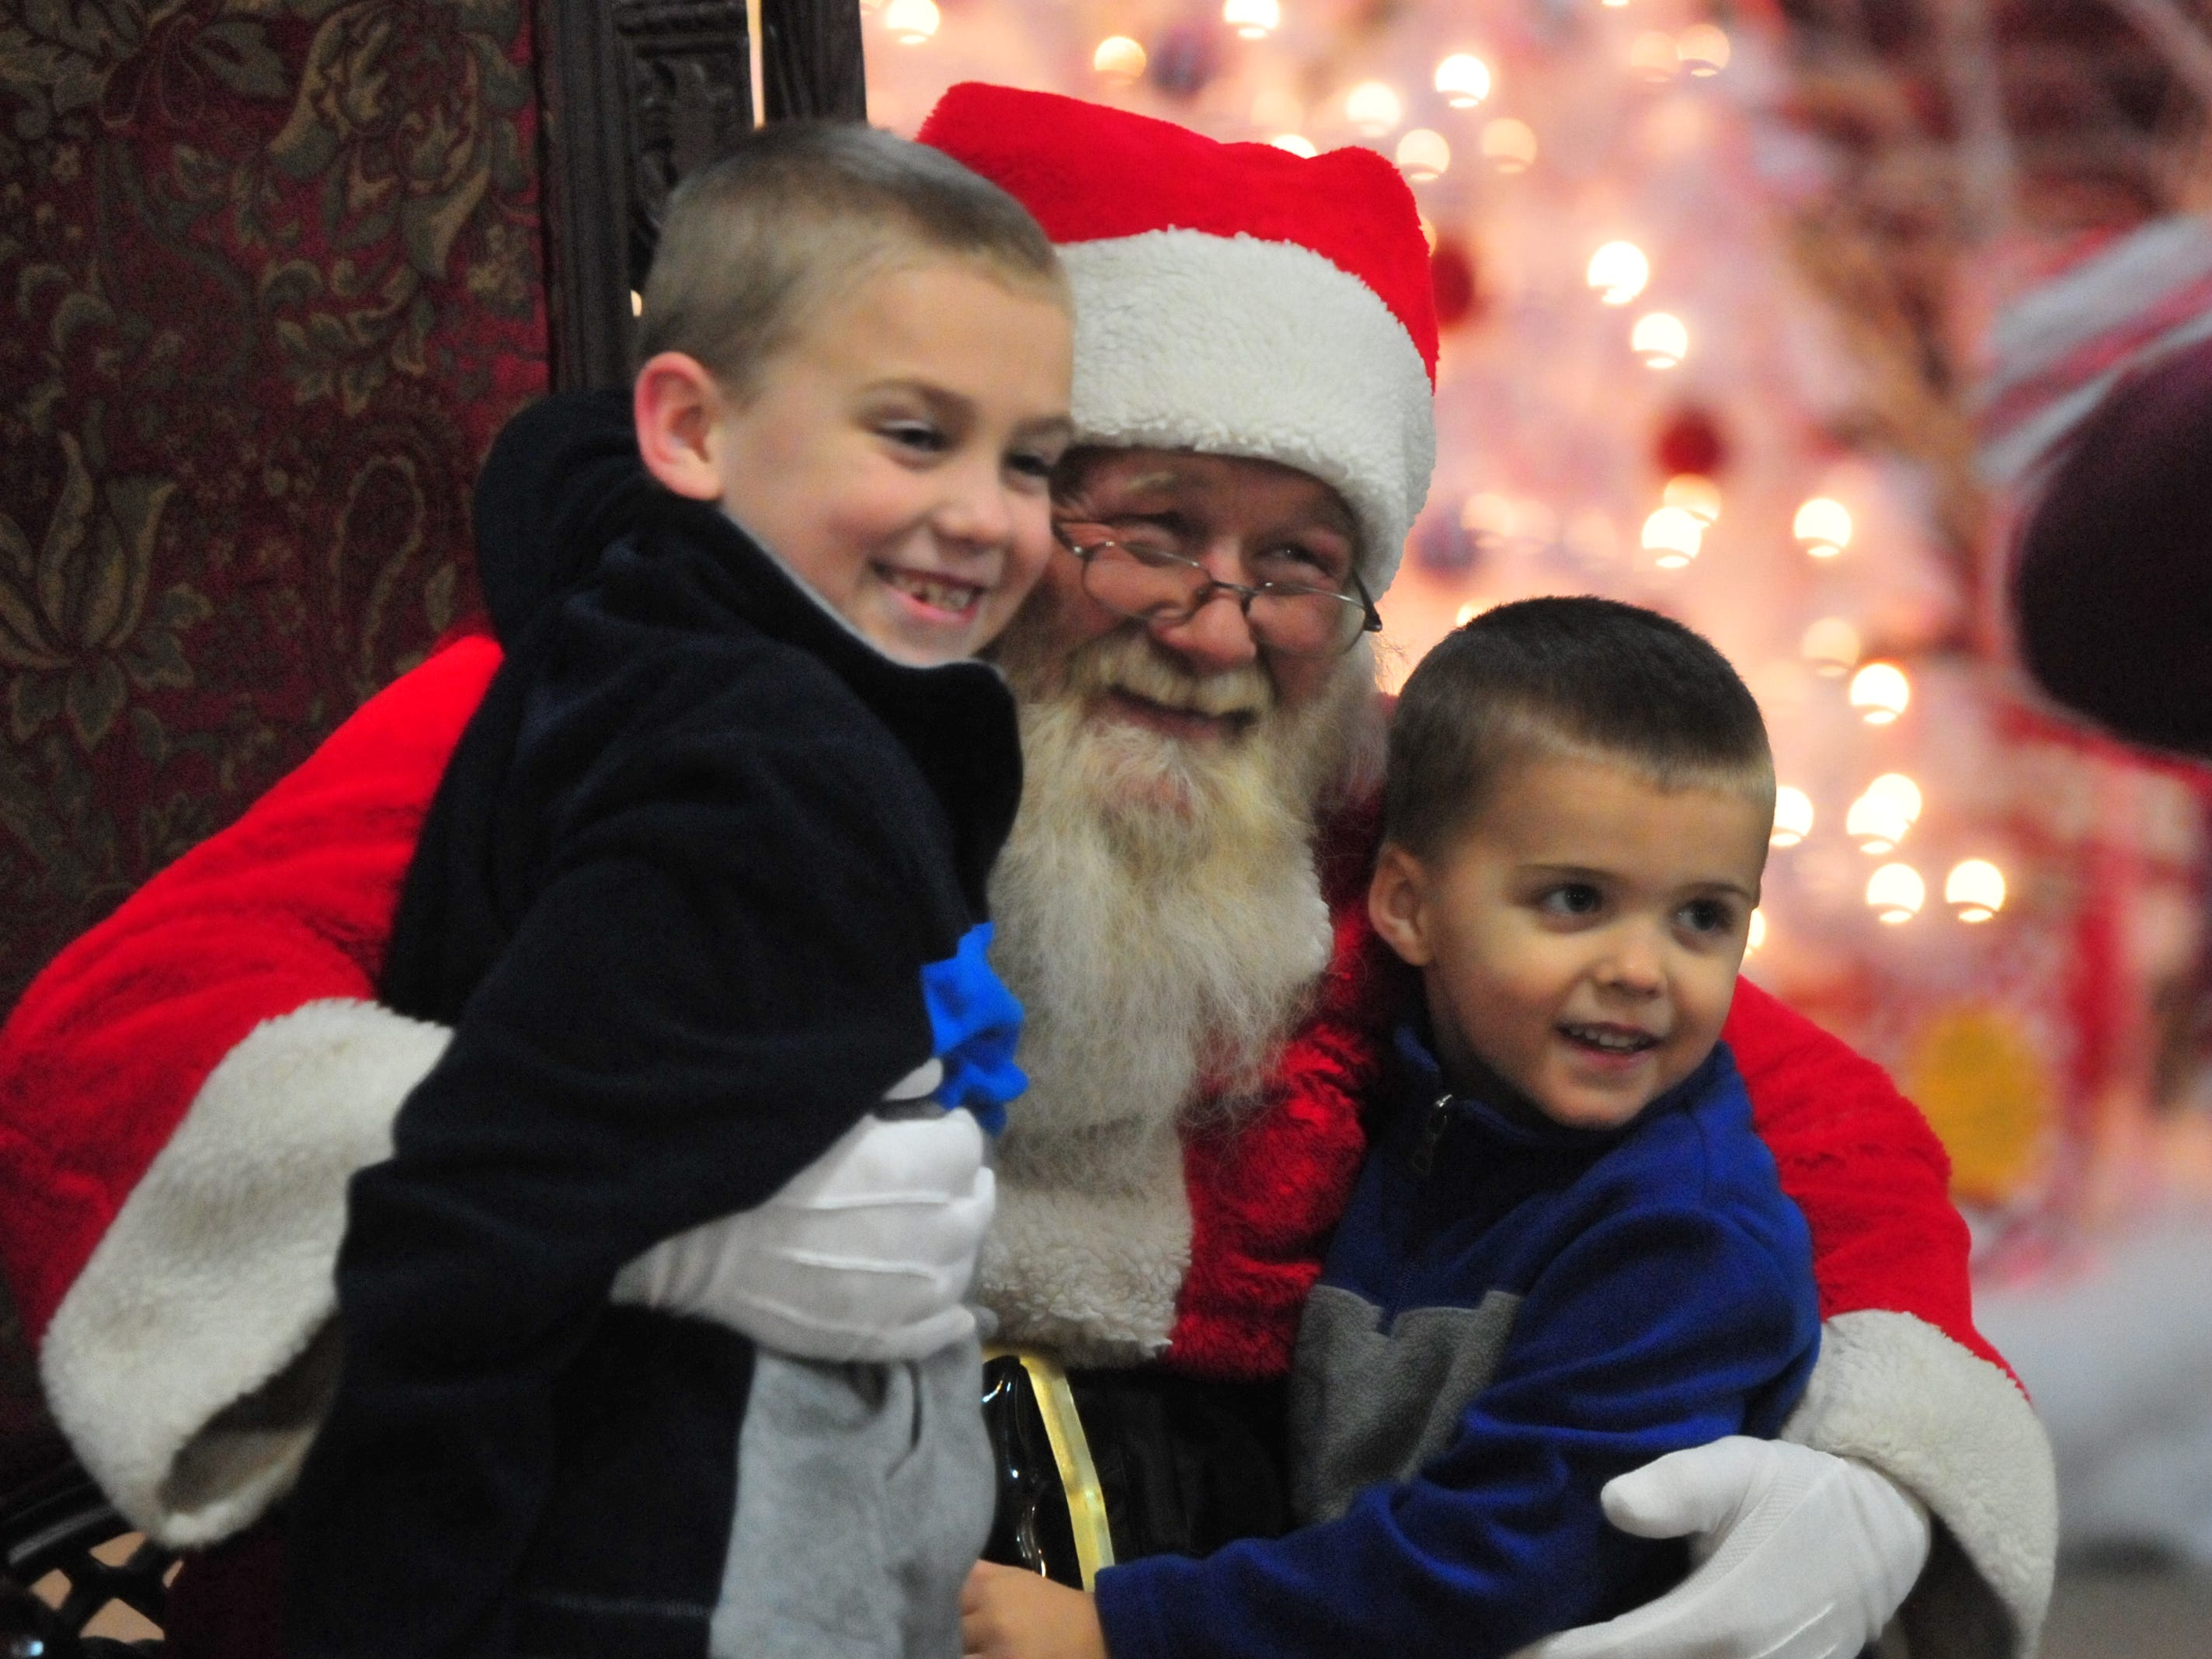 Brody Baugh, 7, and Bronson Baugh, 4, pose for a photograph with Santa during Tuesday's 14th annual Old-Fashioned Christmas Festival.